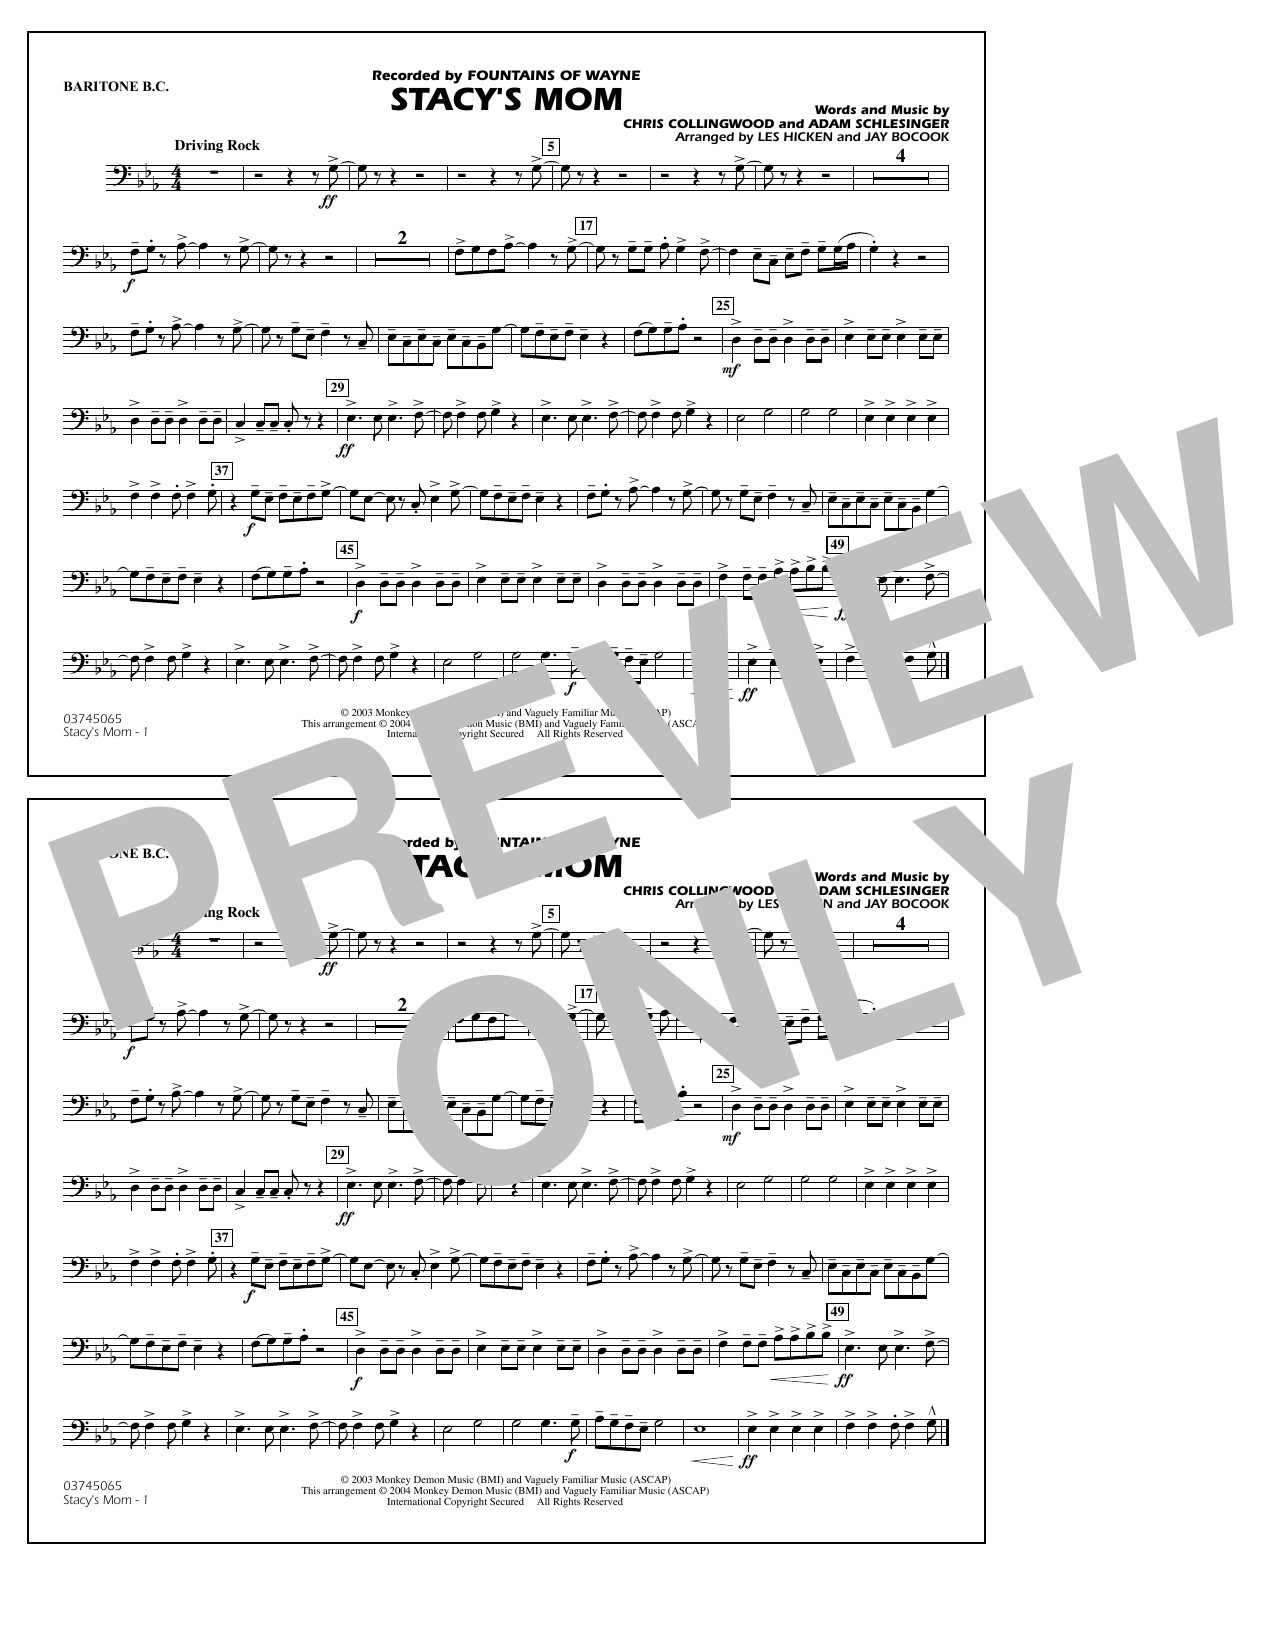 Fountains Of Wayne Stacy's Mom (arr. Les Hicken and Jay Bocook) - Baritone B.C. sheet music notes and chords. Download Printable PDF.